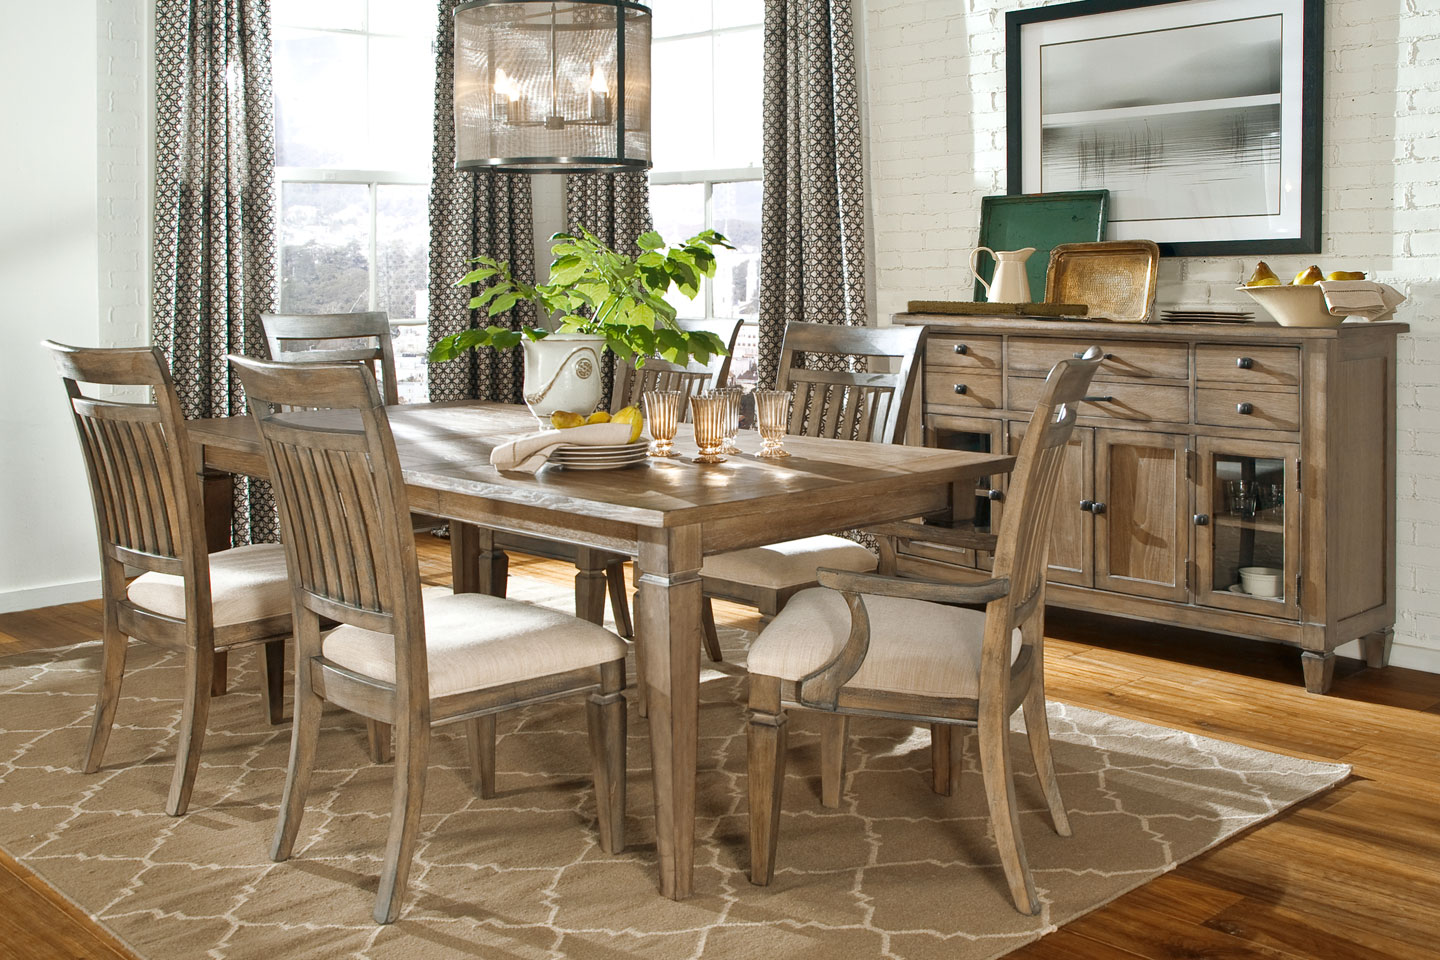 Gavin rustic formal dining room set fine dining furniture - Dining rooms furniture ...